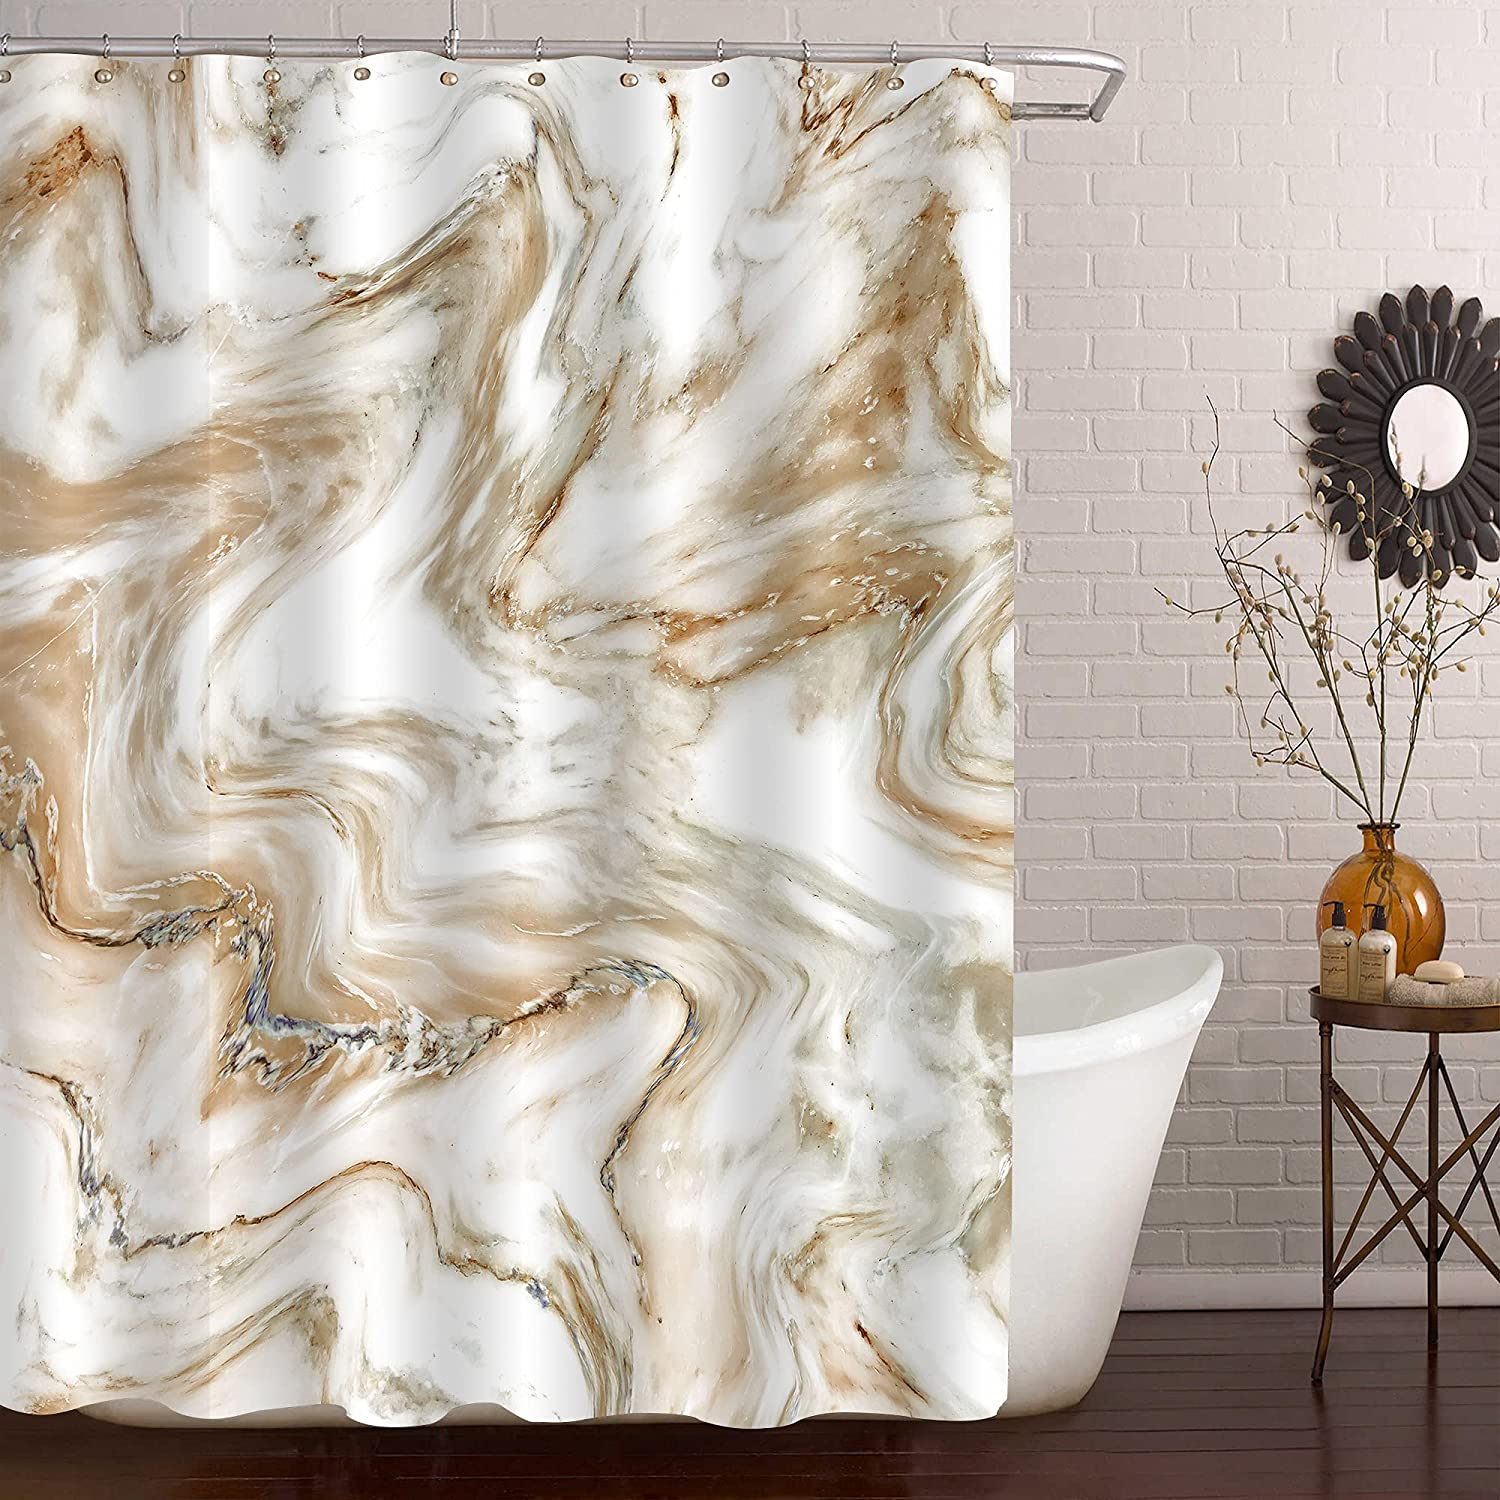 MitoVilla Brown Max 41% Popular products OFF Extra Long Shower Ma Curtain Length 96 in